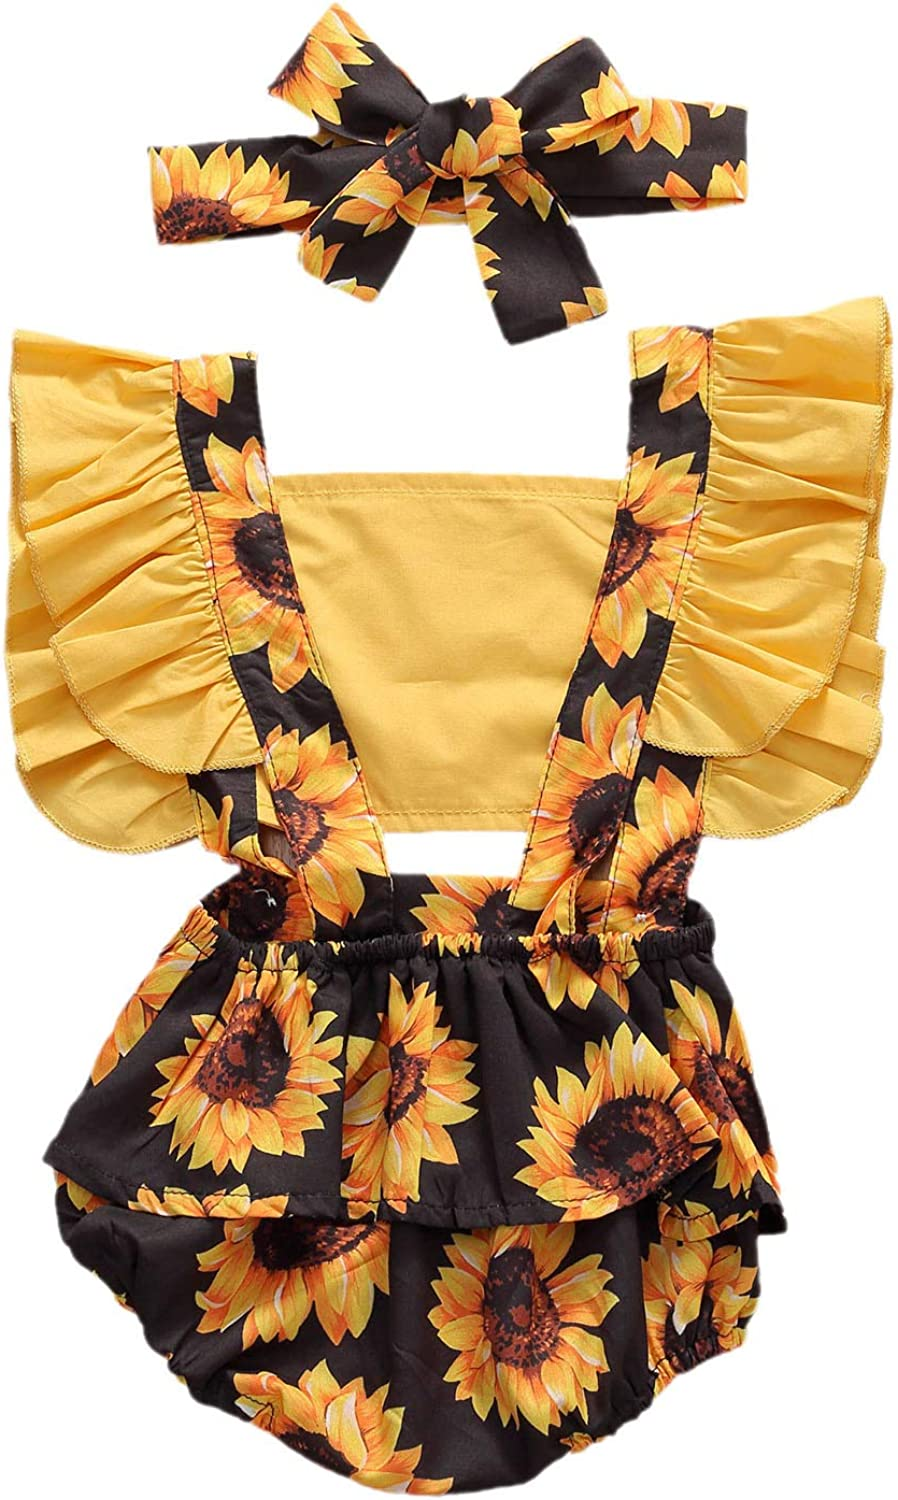 LVBU Girl One Piece Romper Toddler Ruffle Sleeveless Outfits Bodysuit Jumpsuit with Headband Clothes Set